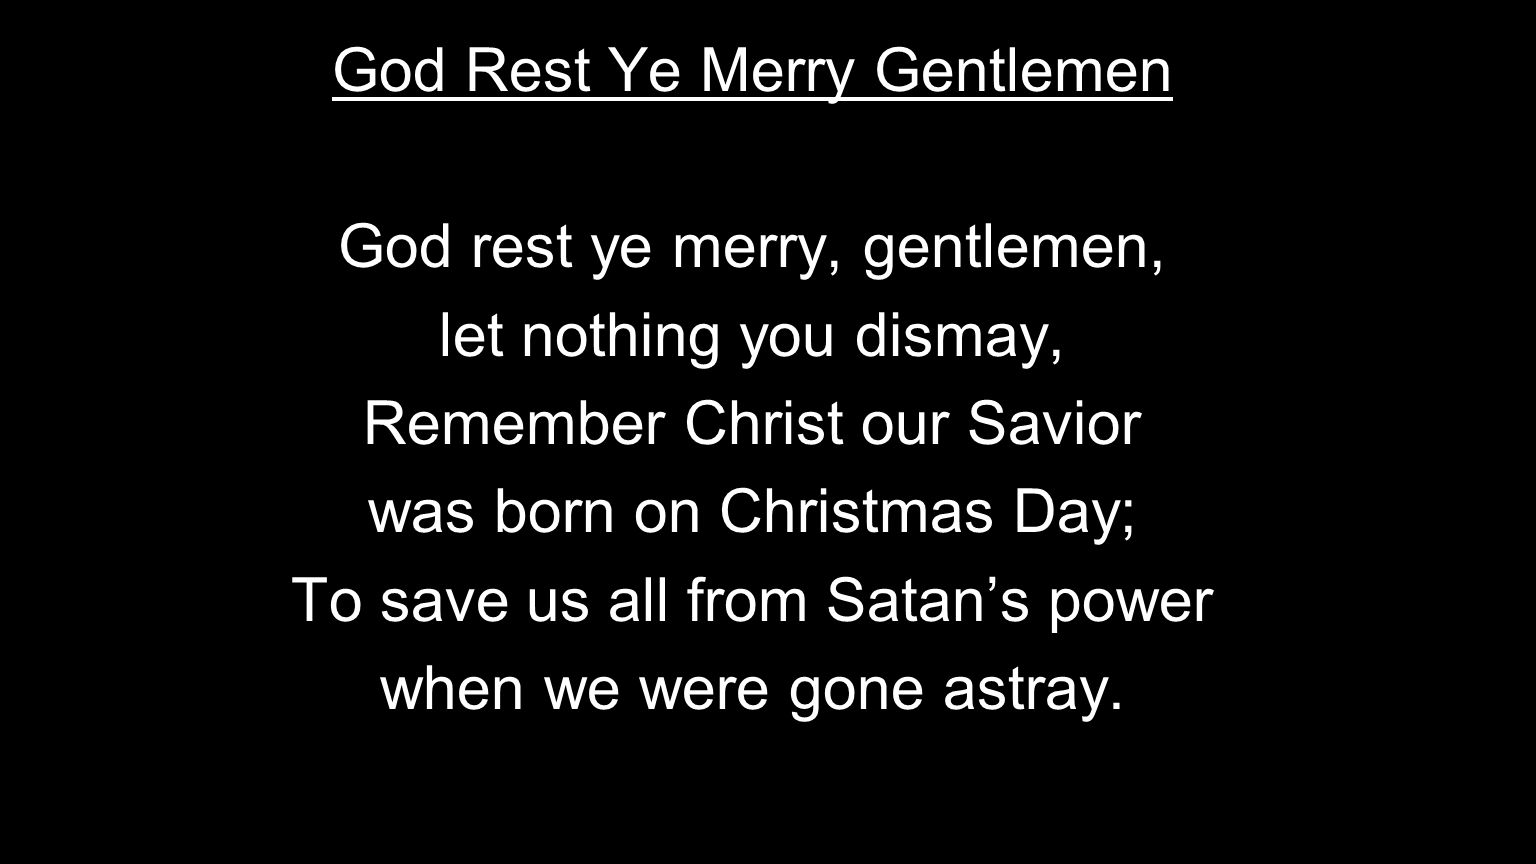 God Rest Ye Merry Gentlemen God rest ye merry, gentlemen,